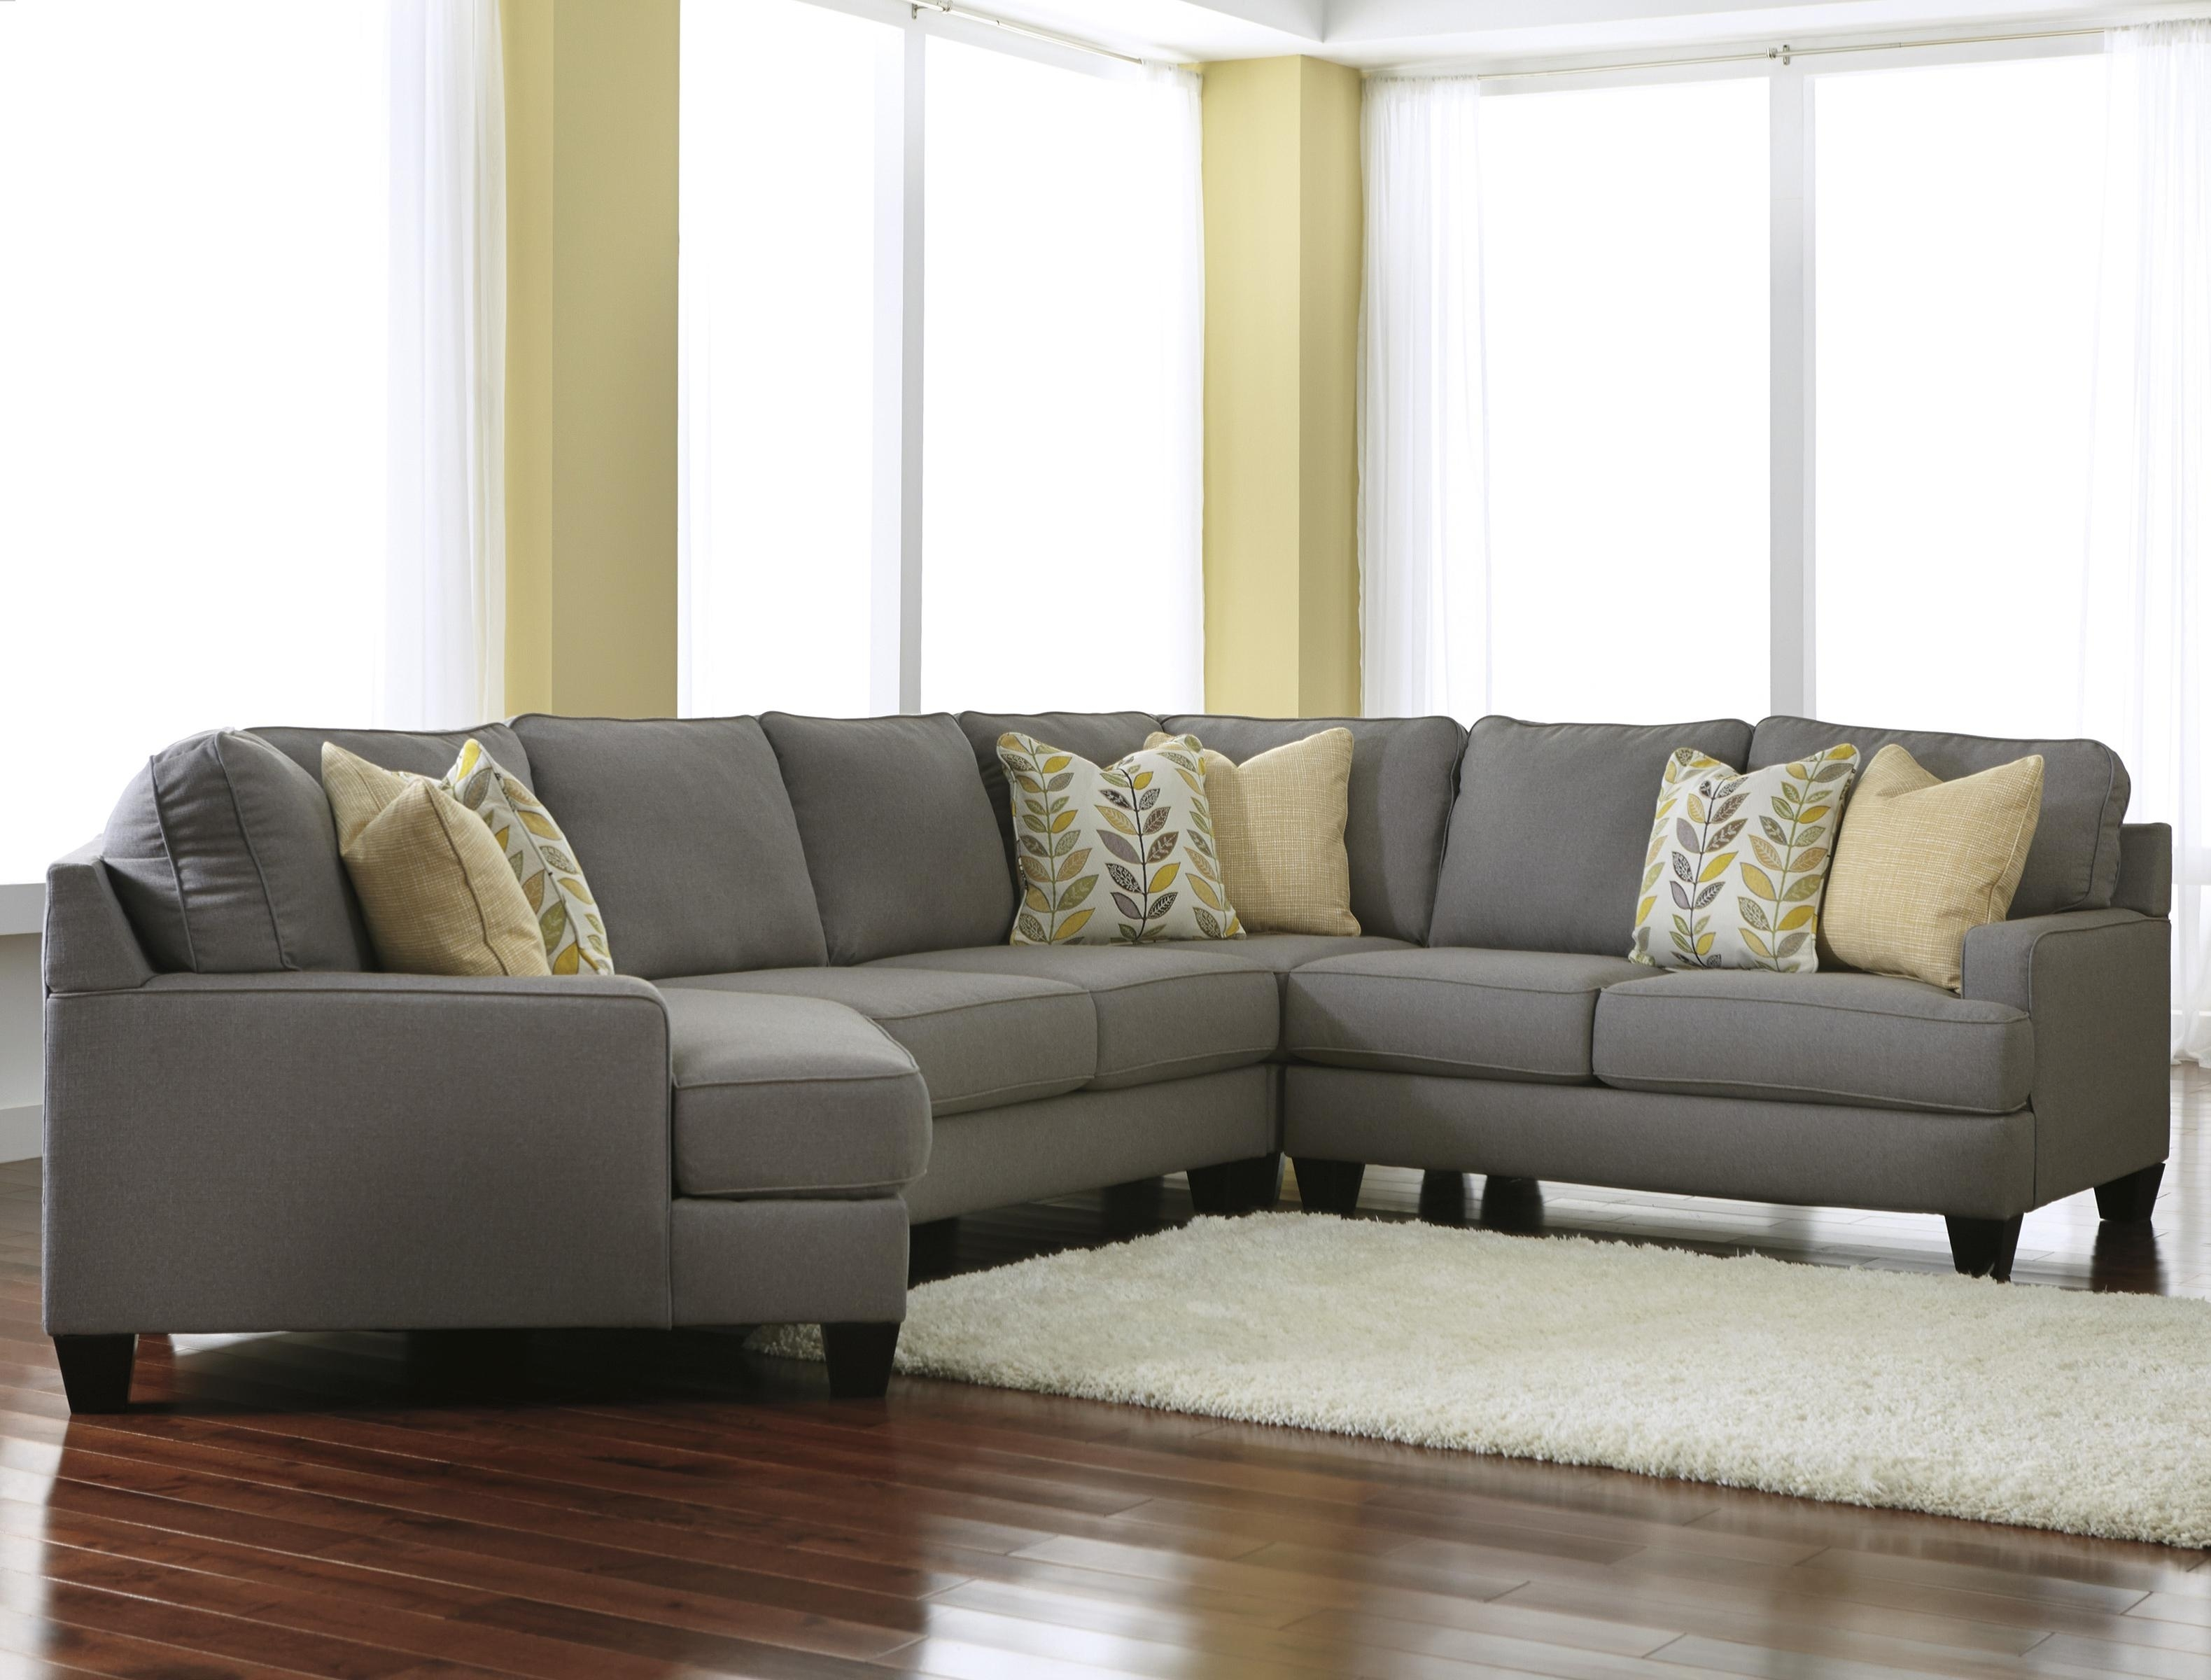 Signature Designashley Chamberly - Alloy Modern 4-Piece with Sectional Sofas With Cuddler (Image 9 of 10)